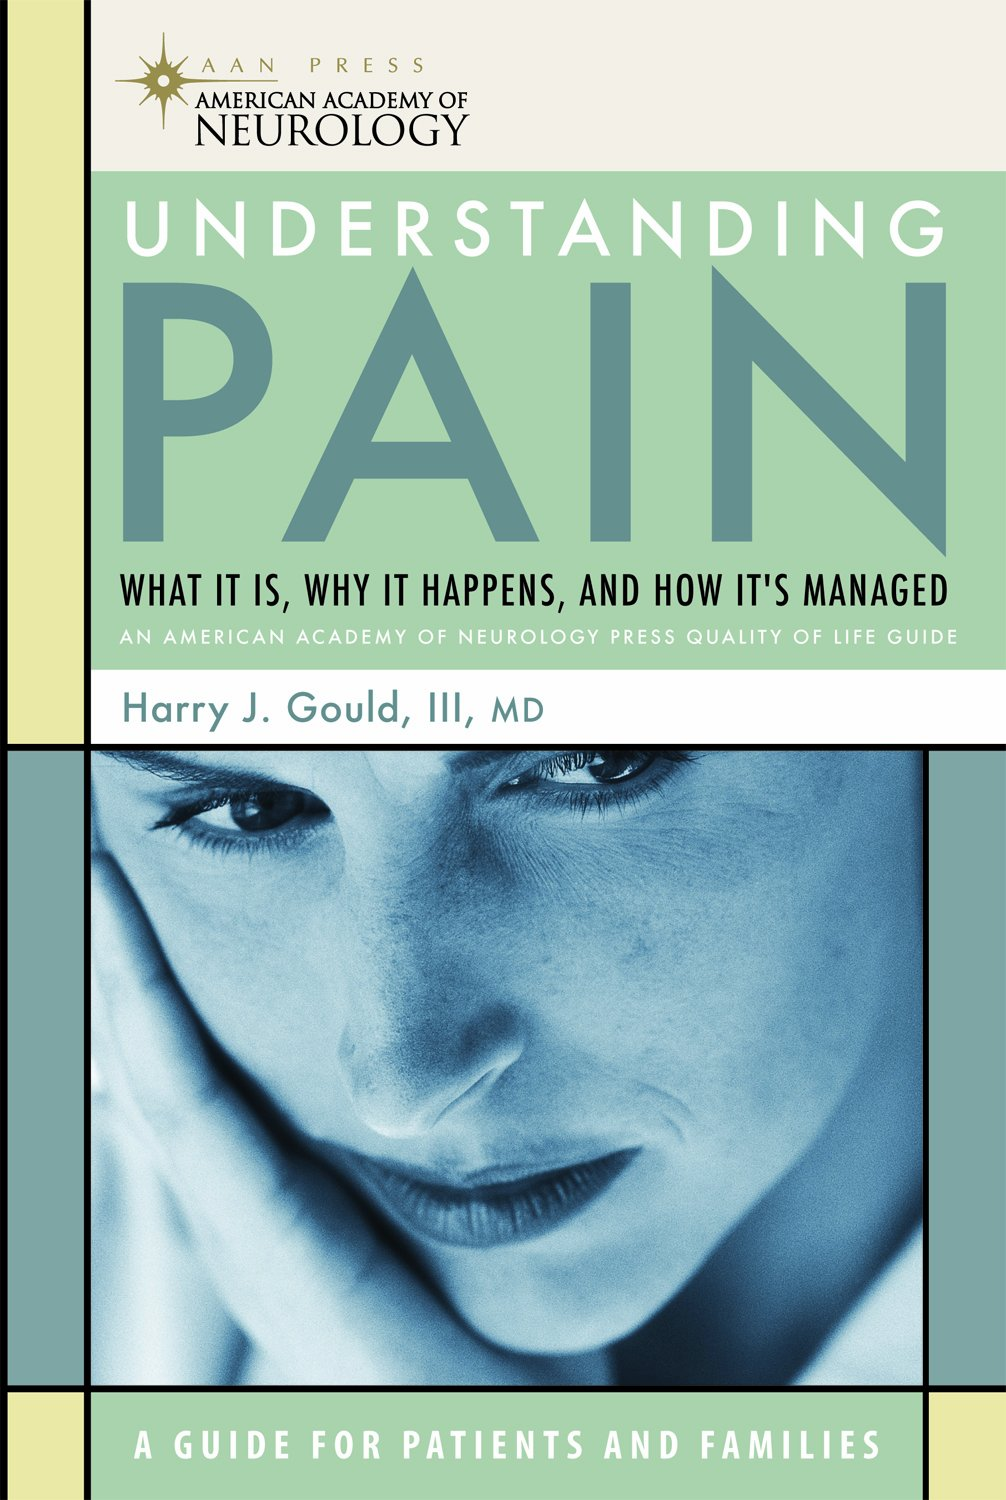 Download Understanding Pain: What It Is, Why It Happens, and How It's Managed (American Academy of Neurology) ebook